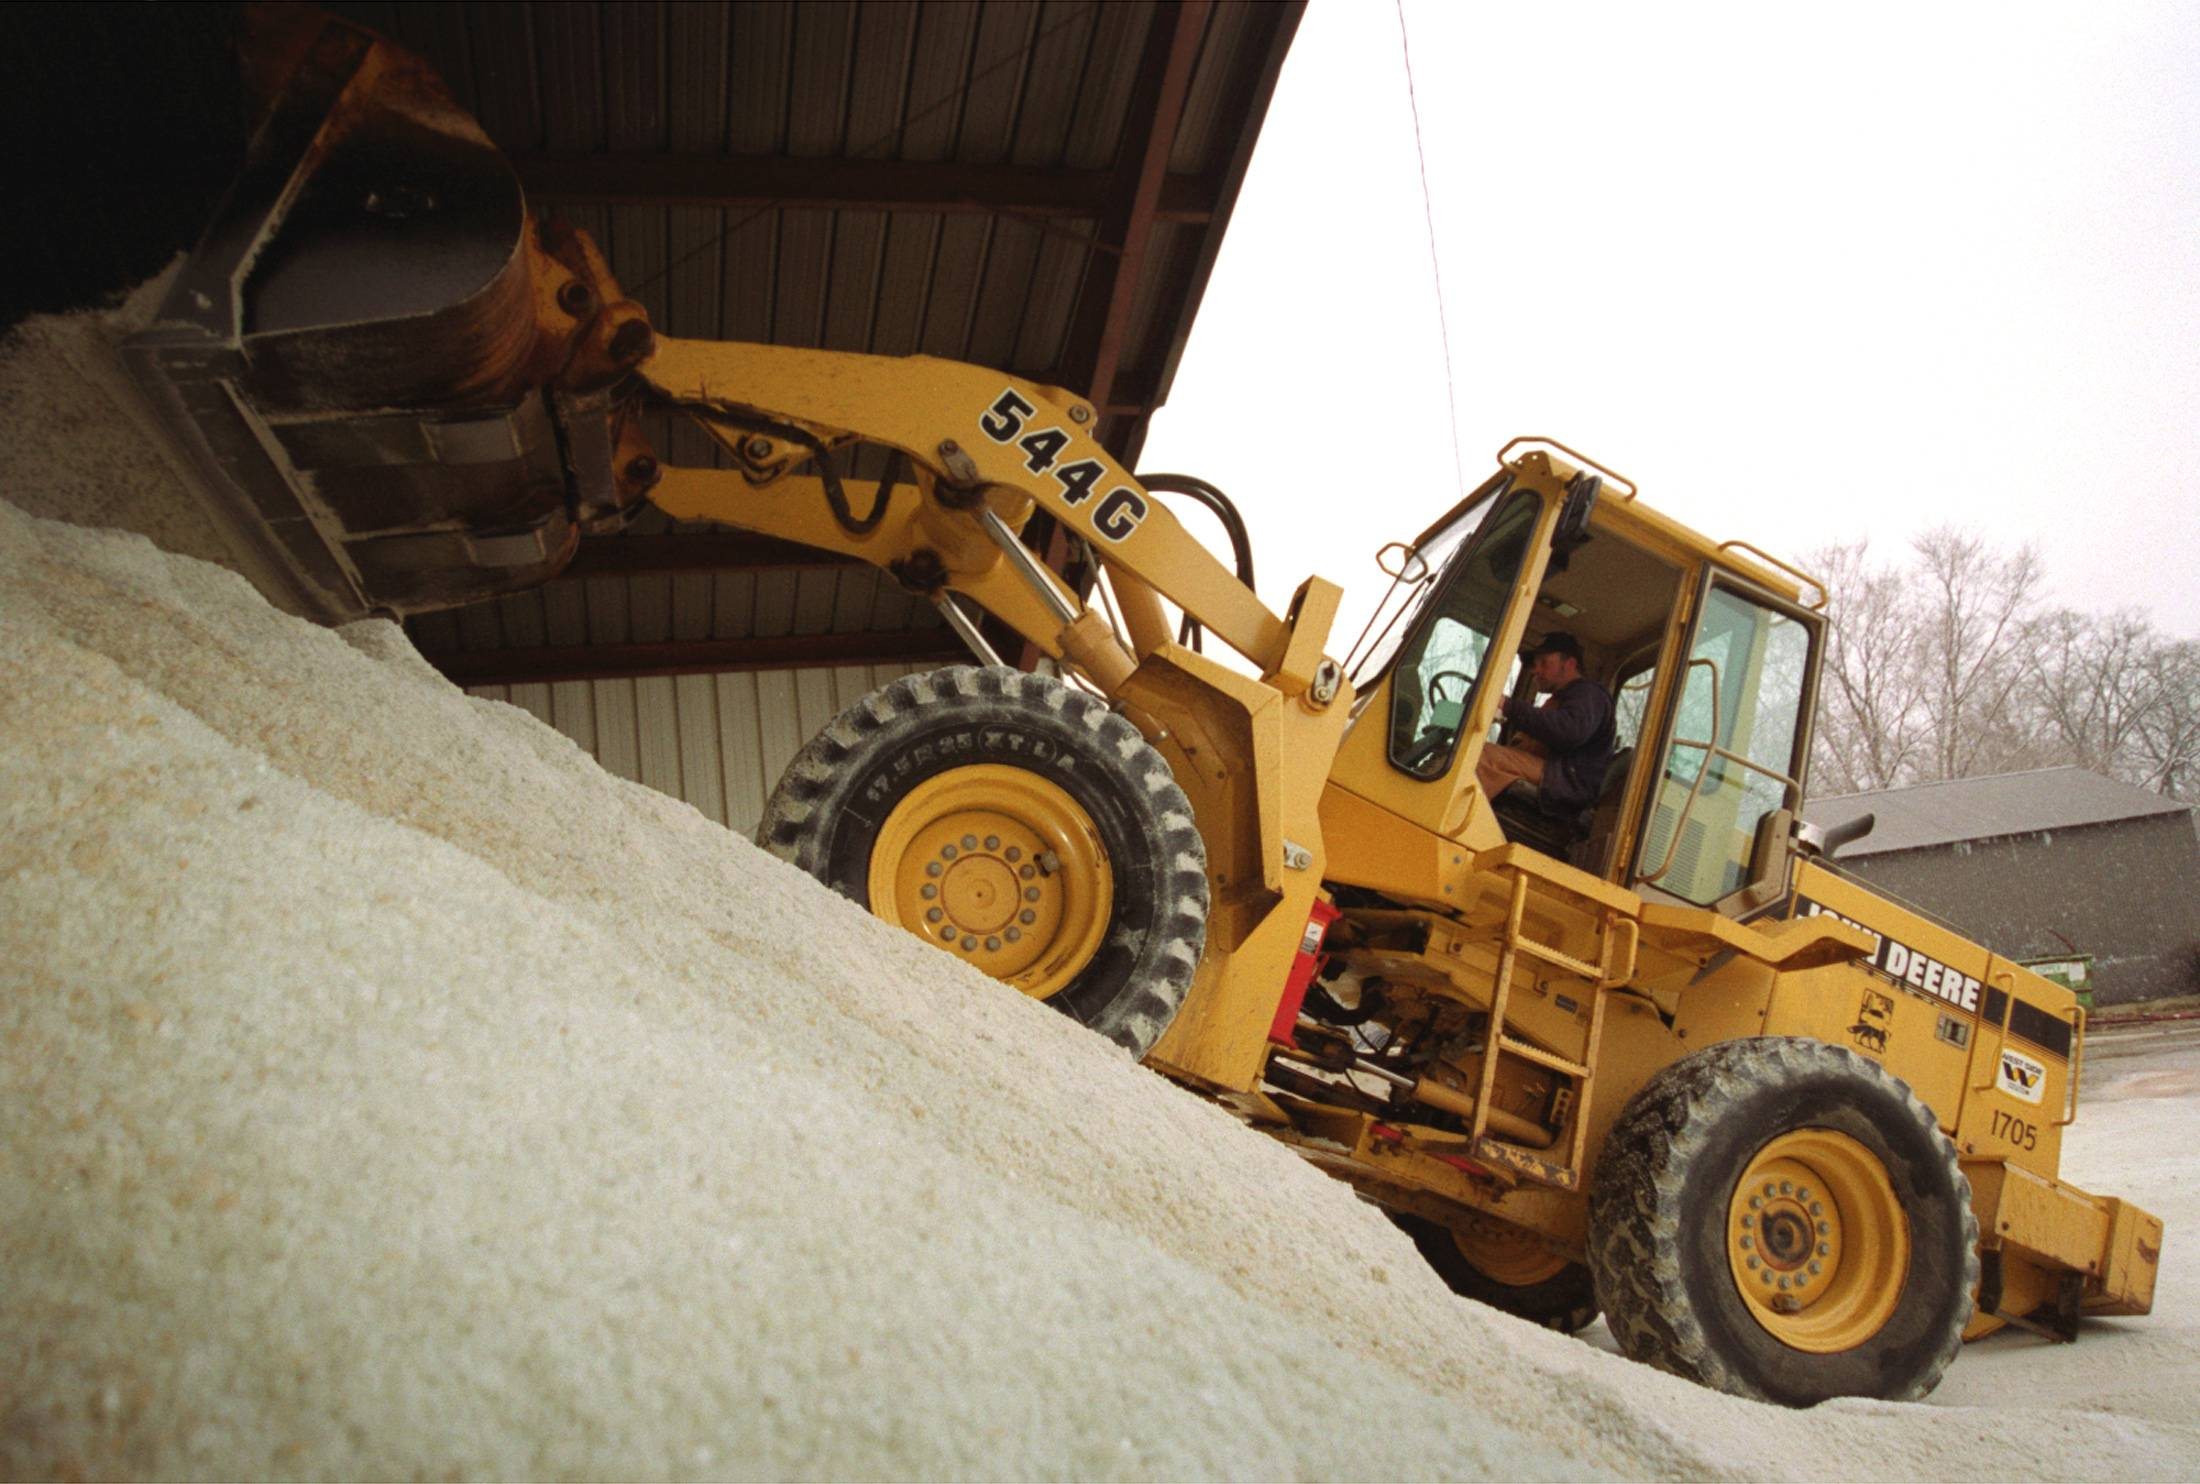 The main salt dome on 7th Avenue in St. Charles, and others, are nearly empty after a harsh winter.